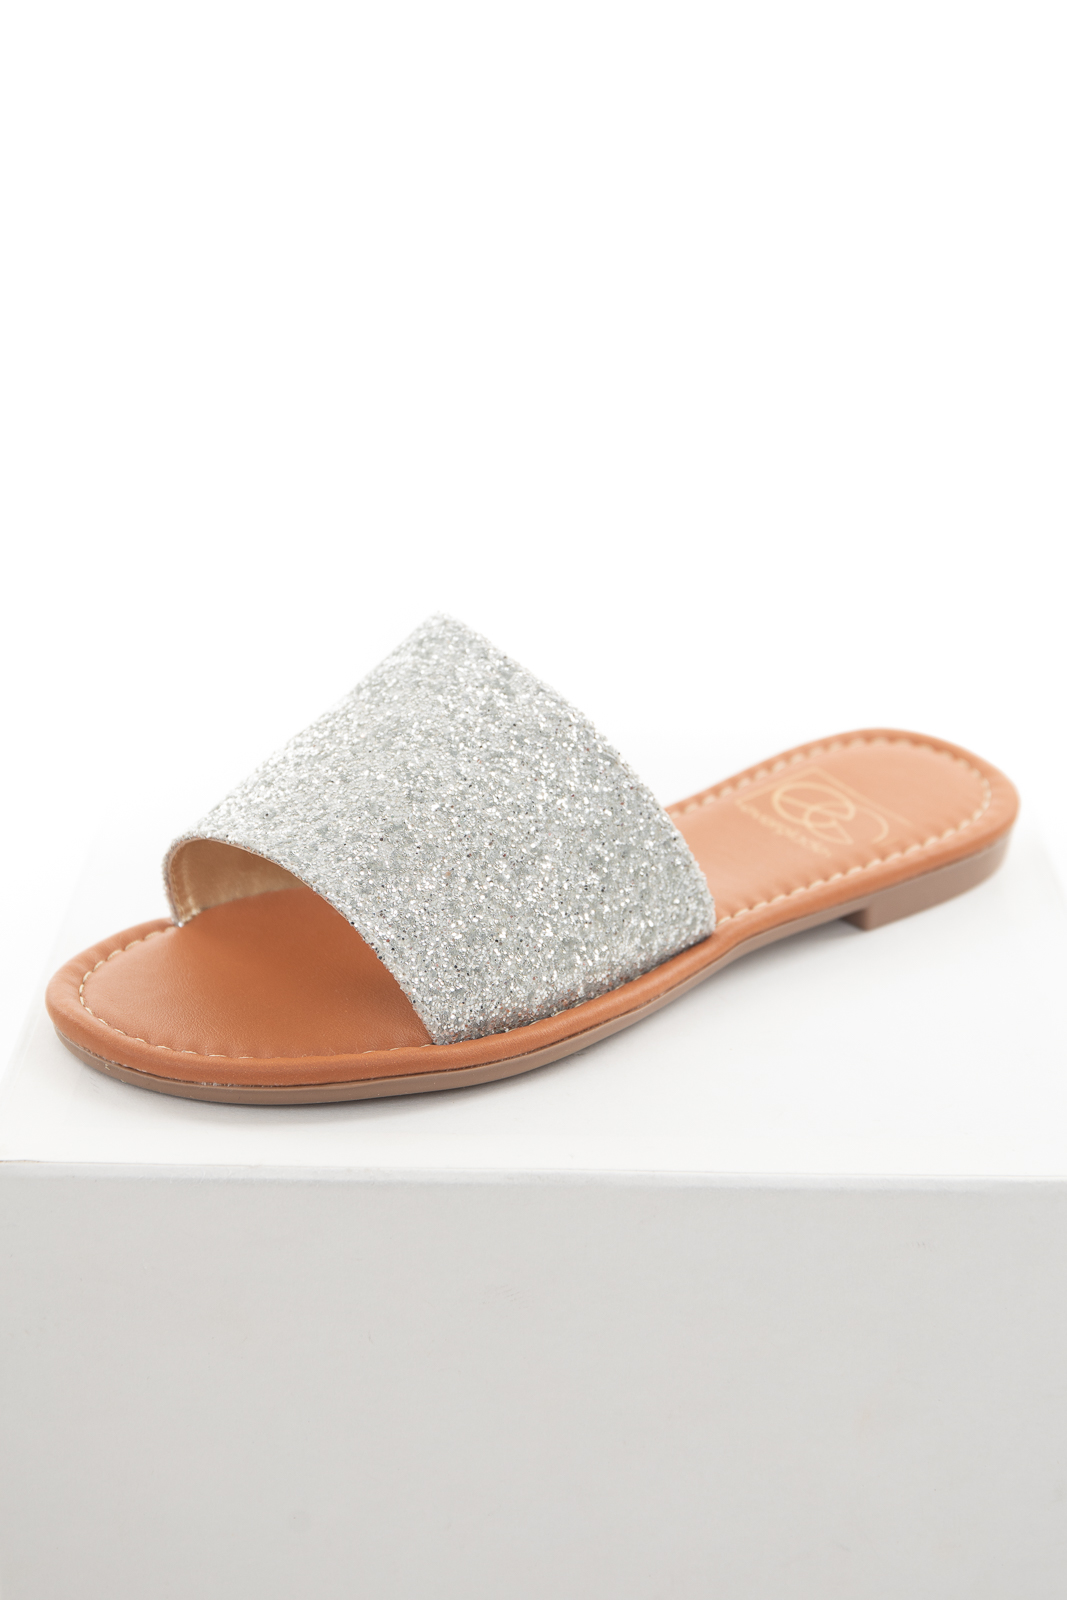 Silver Glitter Large Strap Slip On Sandals with Open Toe